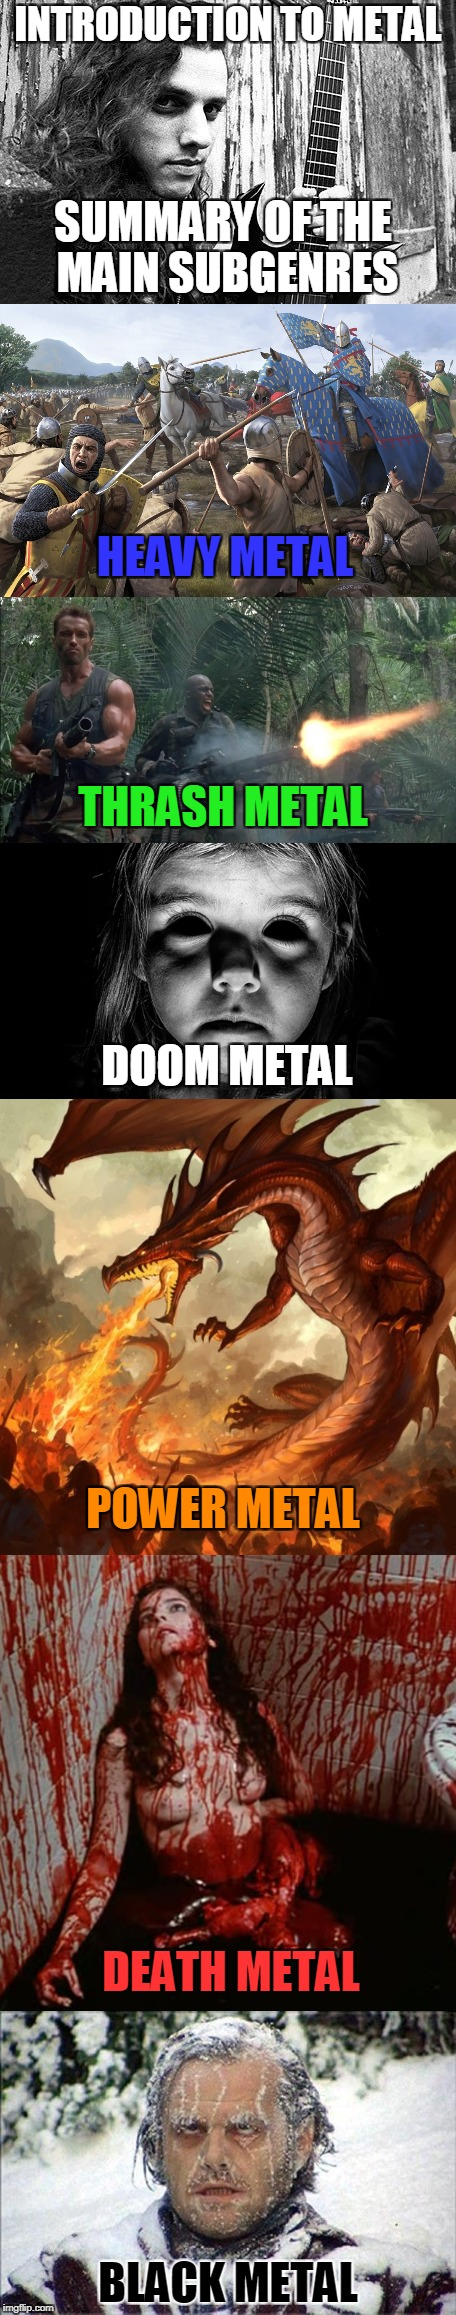 For those who have never listened to metal,here is a rough depiction of what you'll experience while listening! | INTRODUCTION TO METAL BLACK METAL HEAVY METAL THRASH METAL DOOM METAL POWER METAL DEATH METAL SUMMARY OF THE MAIN SUBGENRES | image tagged in memes,powermetalhead,thrash metal,power metal,death metal,black metal | made w/ Imgflip meme maker